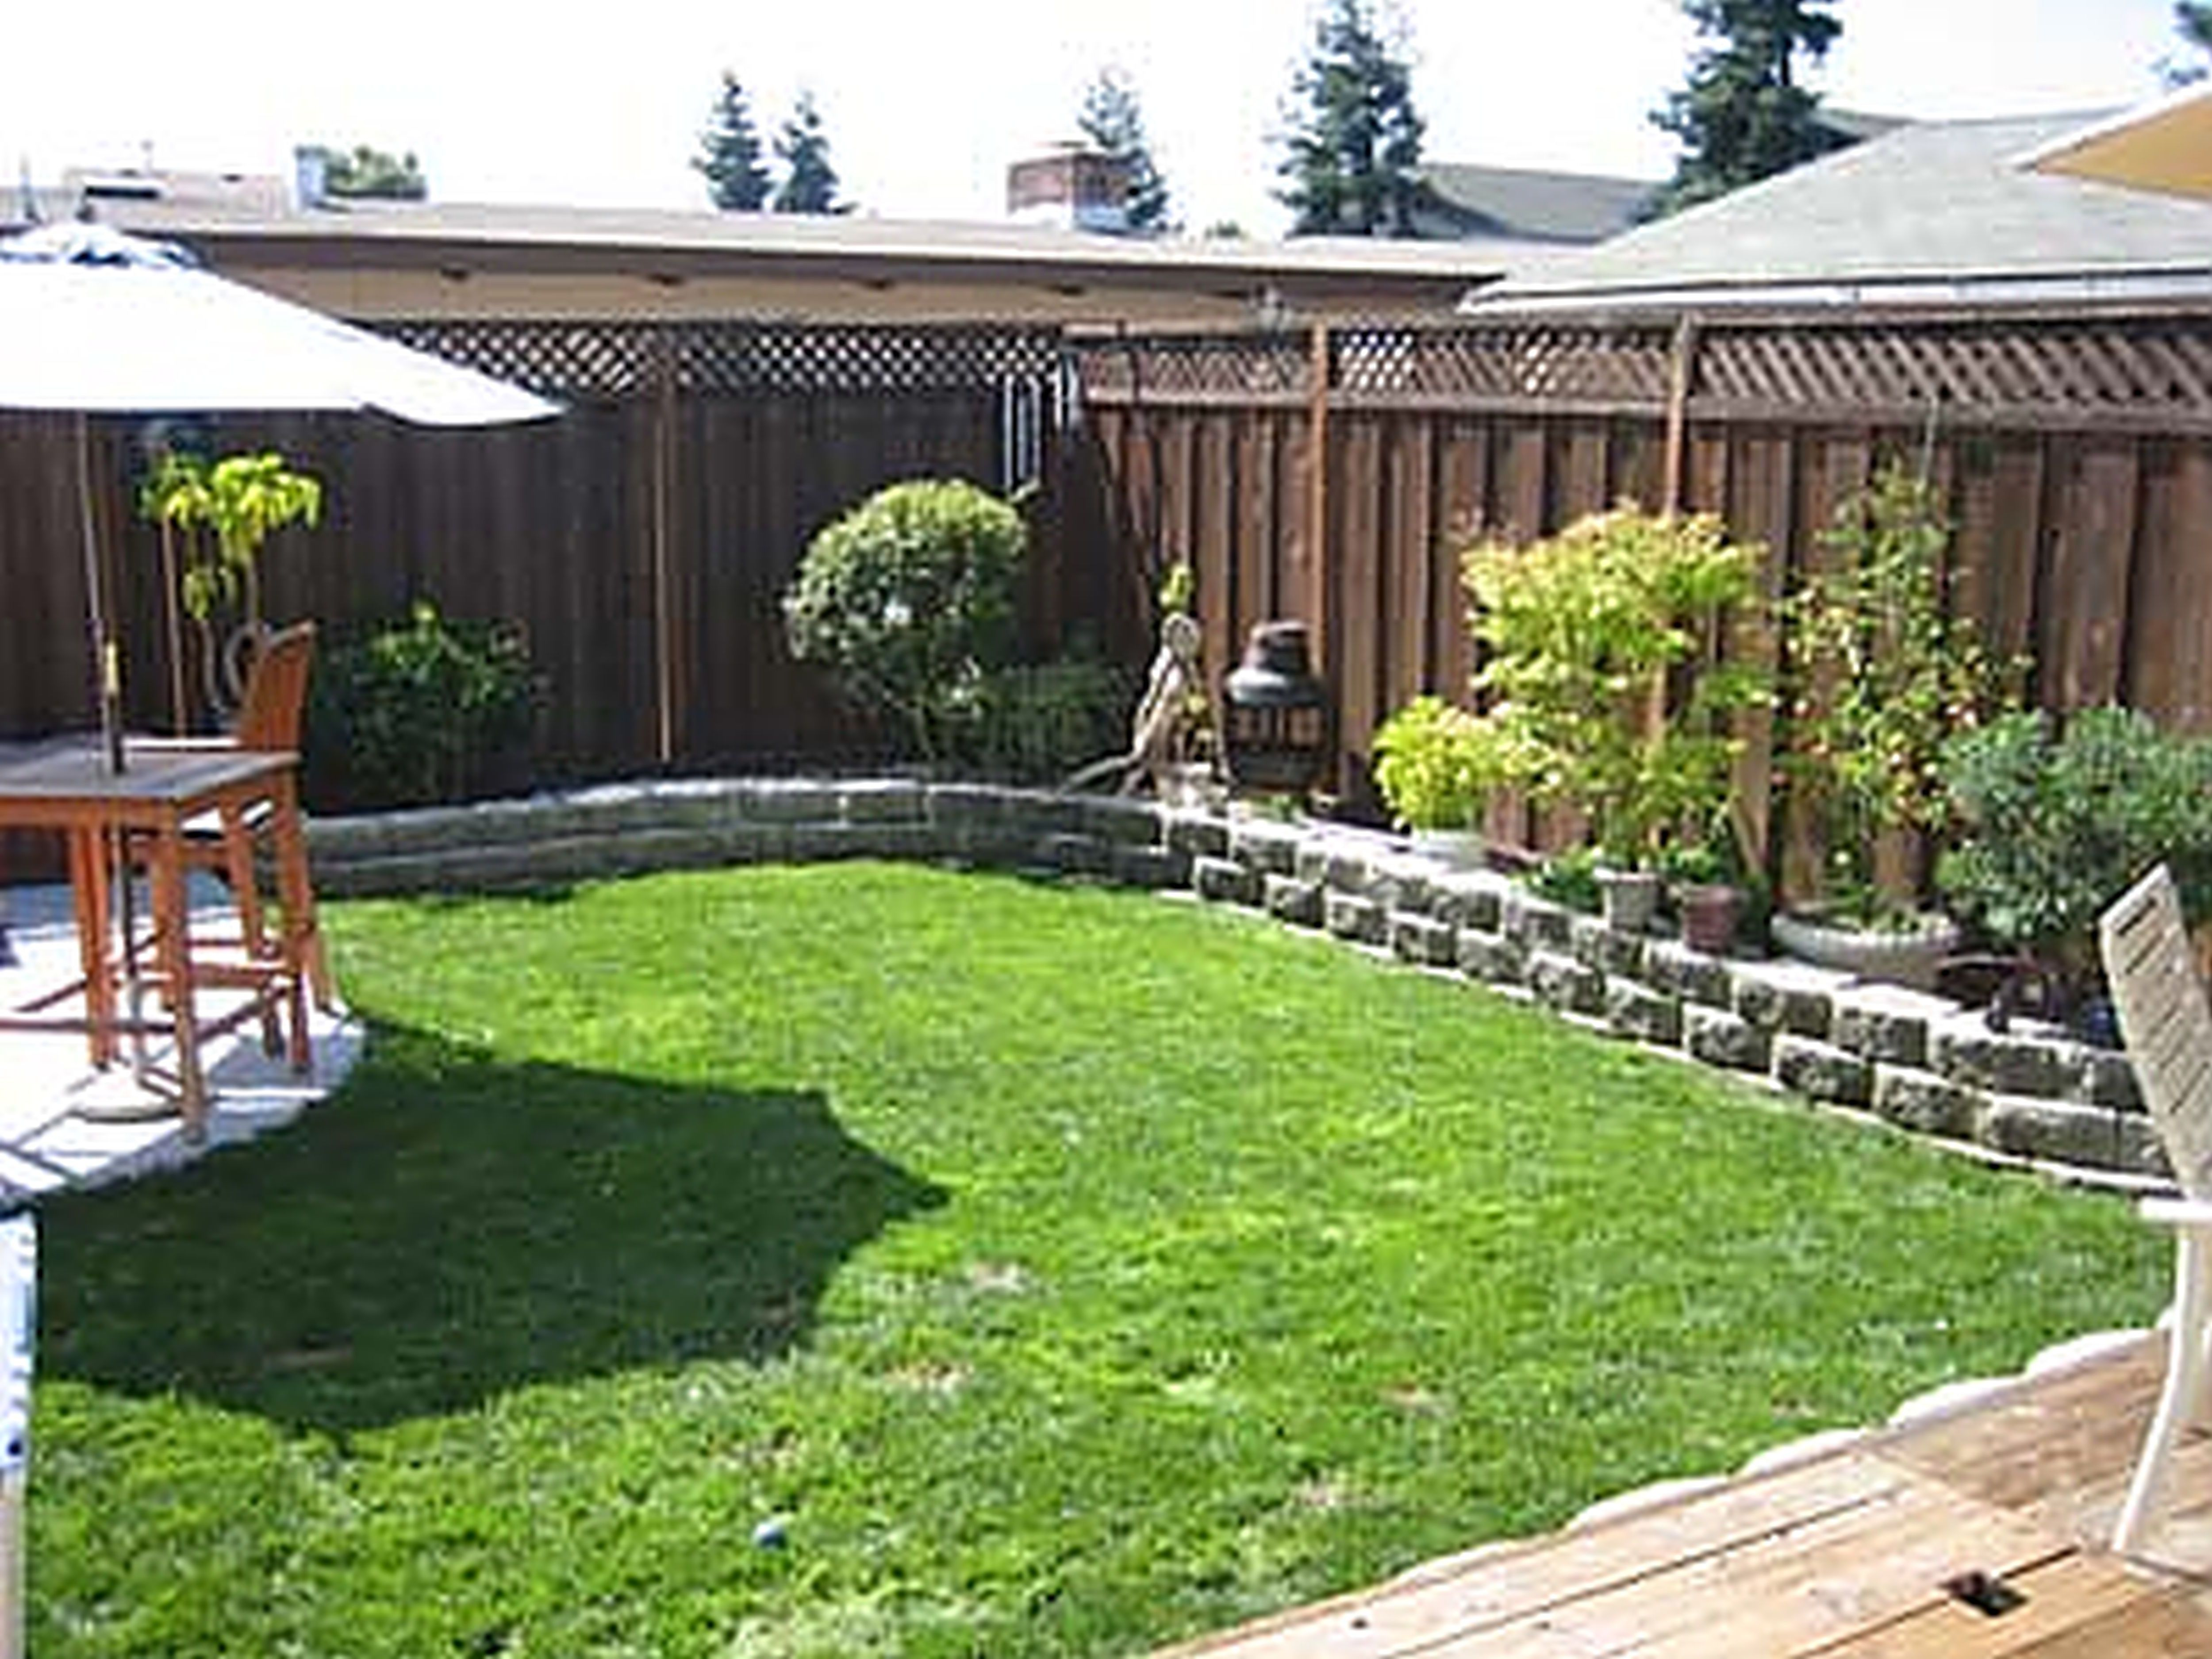 Yard landscaping ideas on a budget small backyard for Small backyard ideas